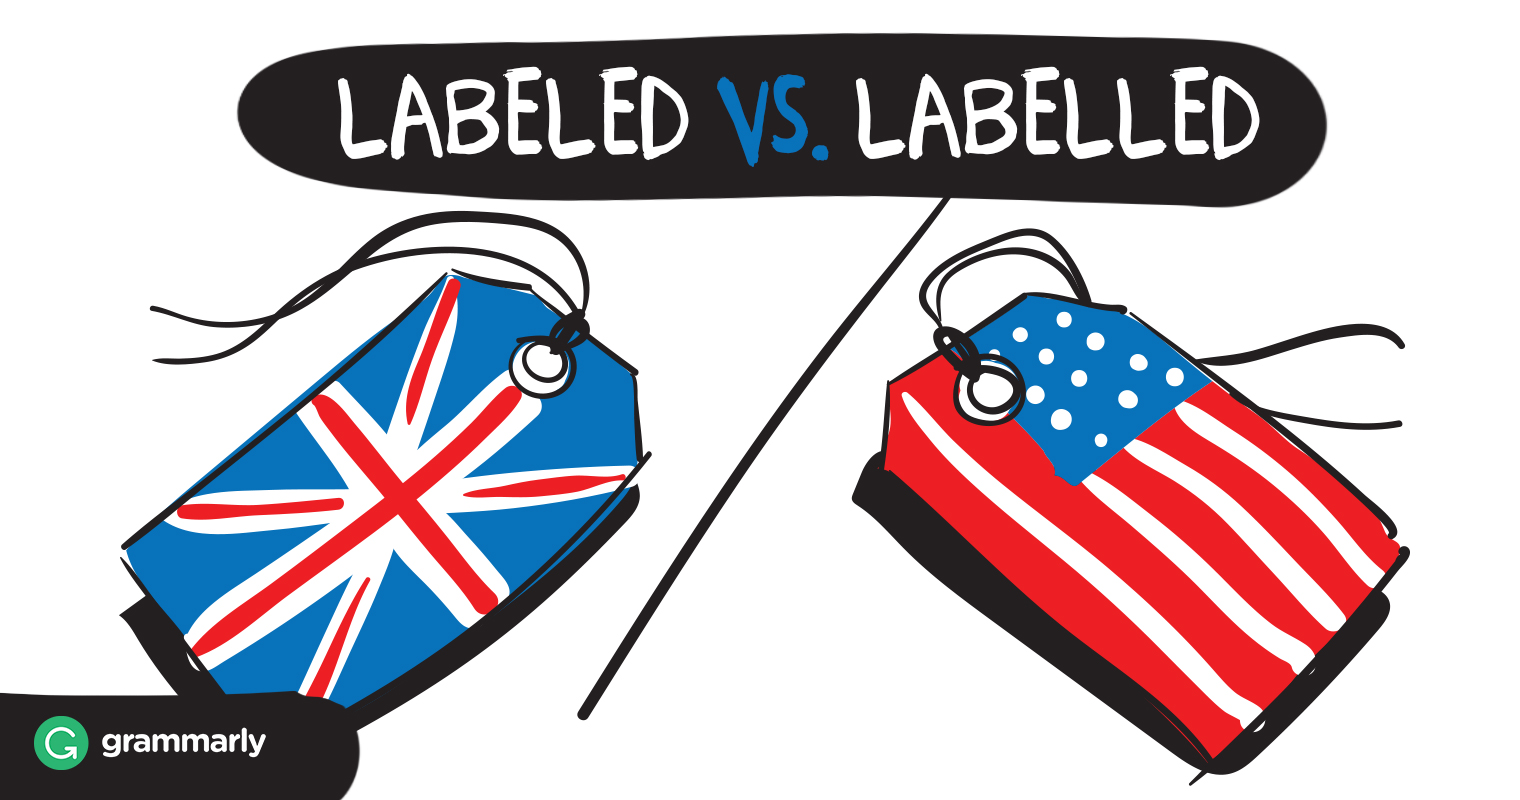 Labeled or Labelled—Which Is Correct?